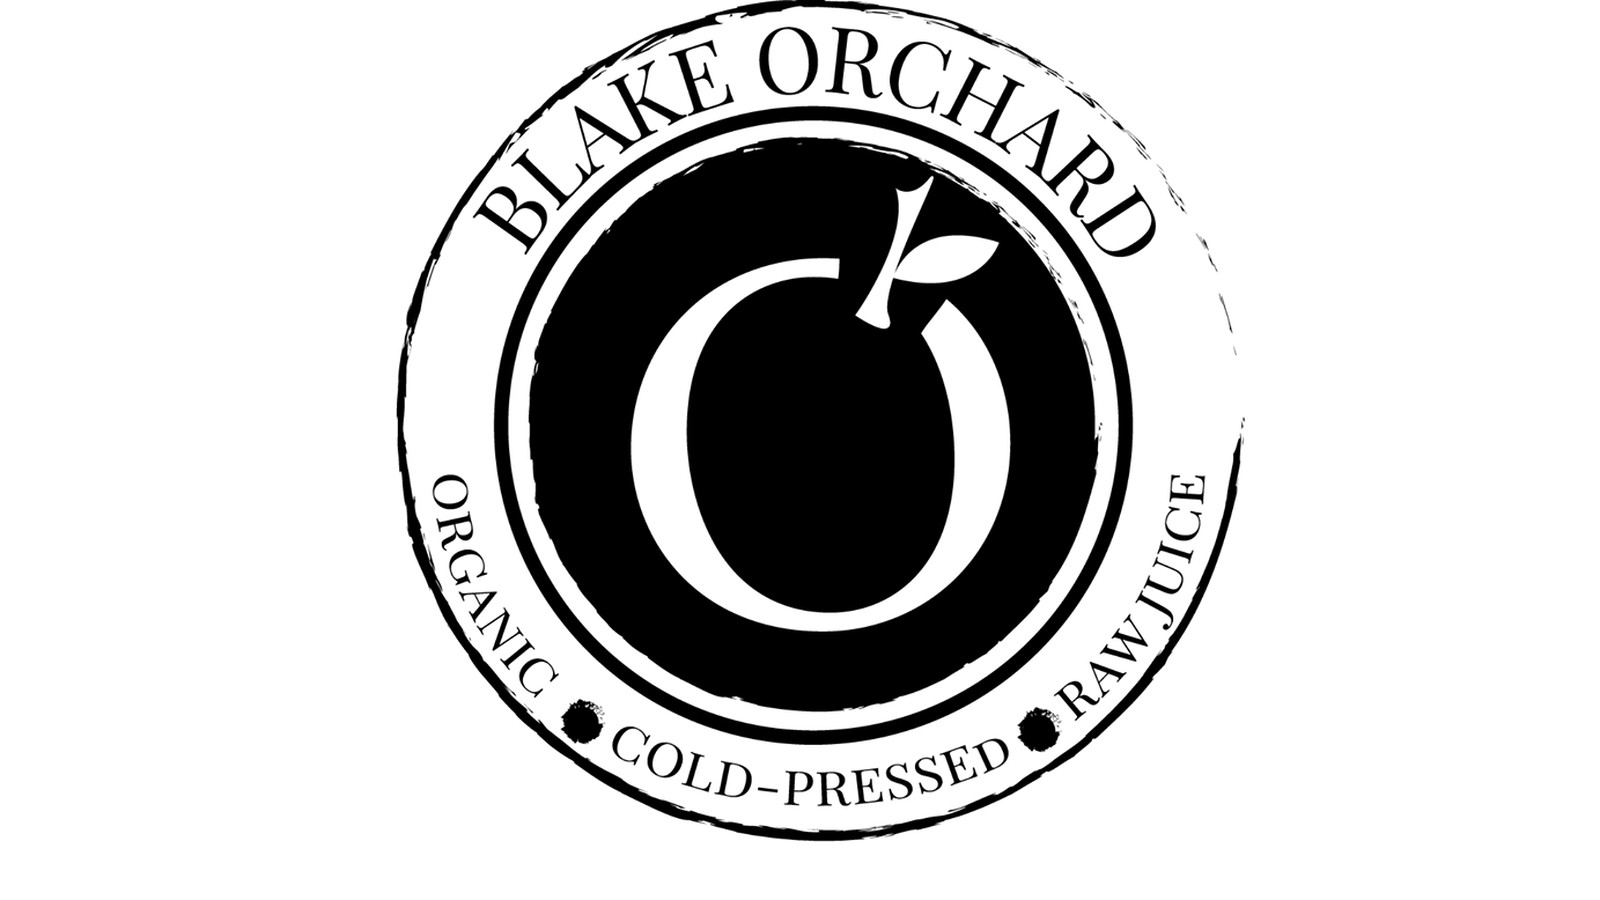 Blake Orchard Juicery Plans to Open Retail Space in